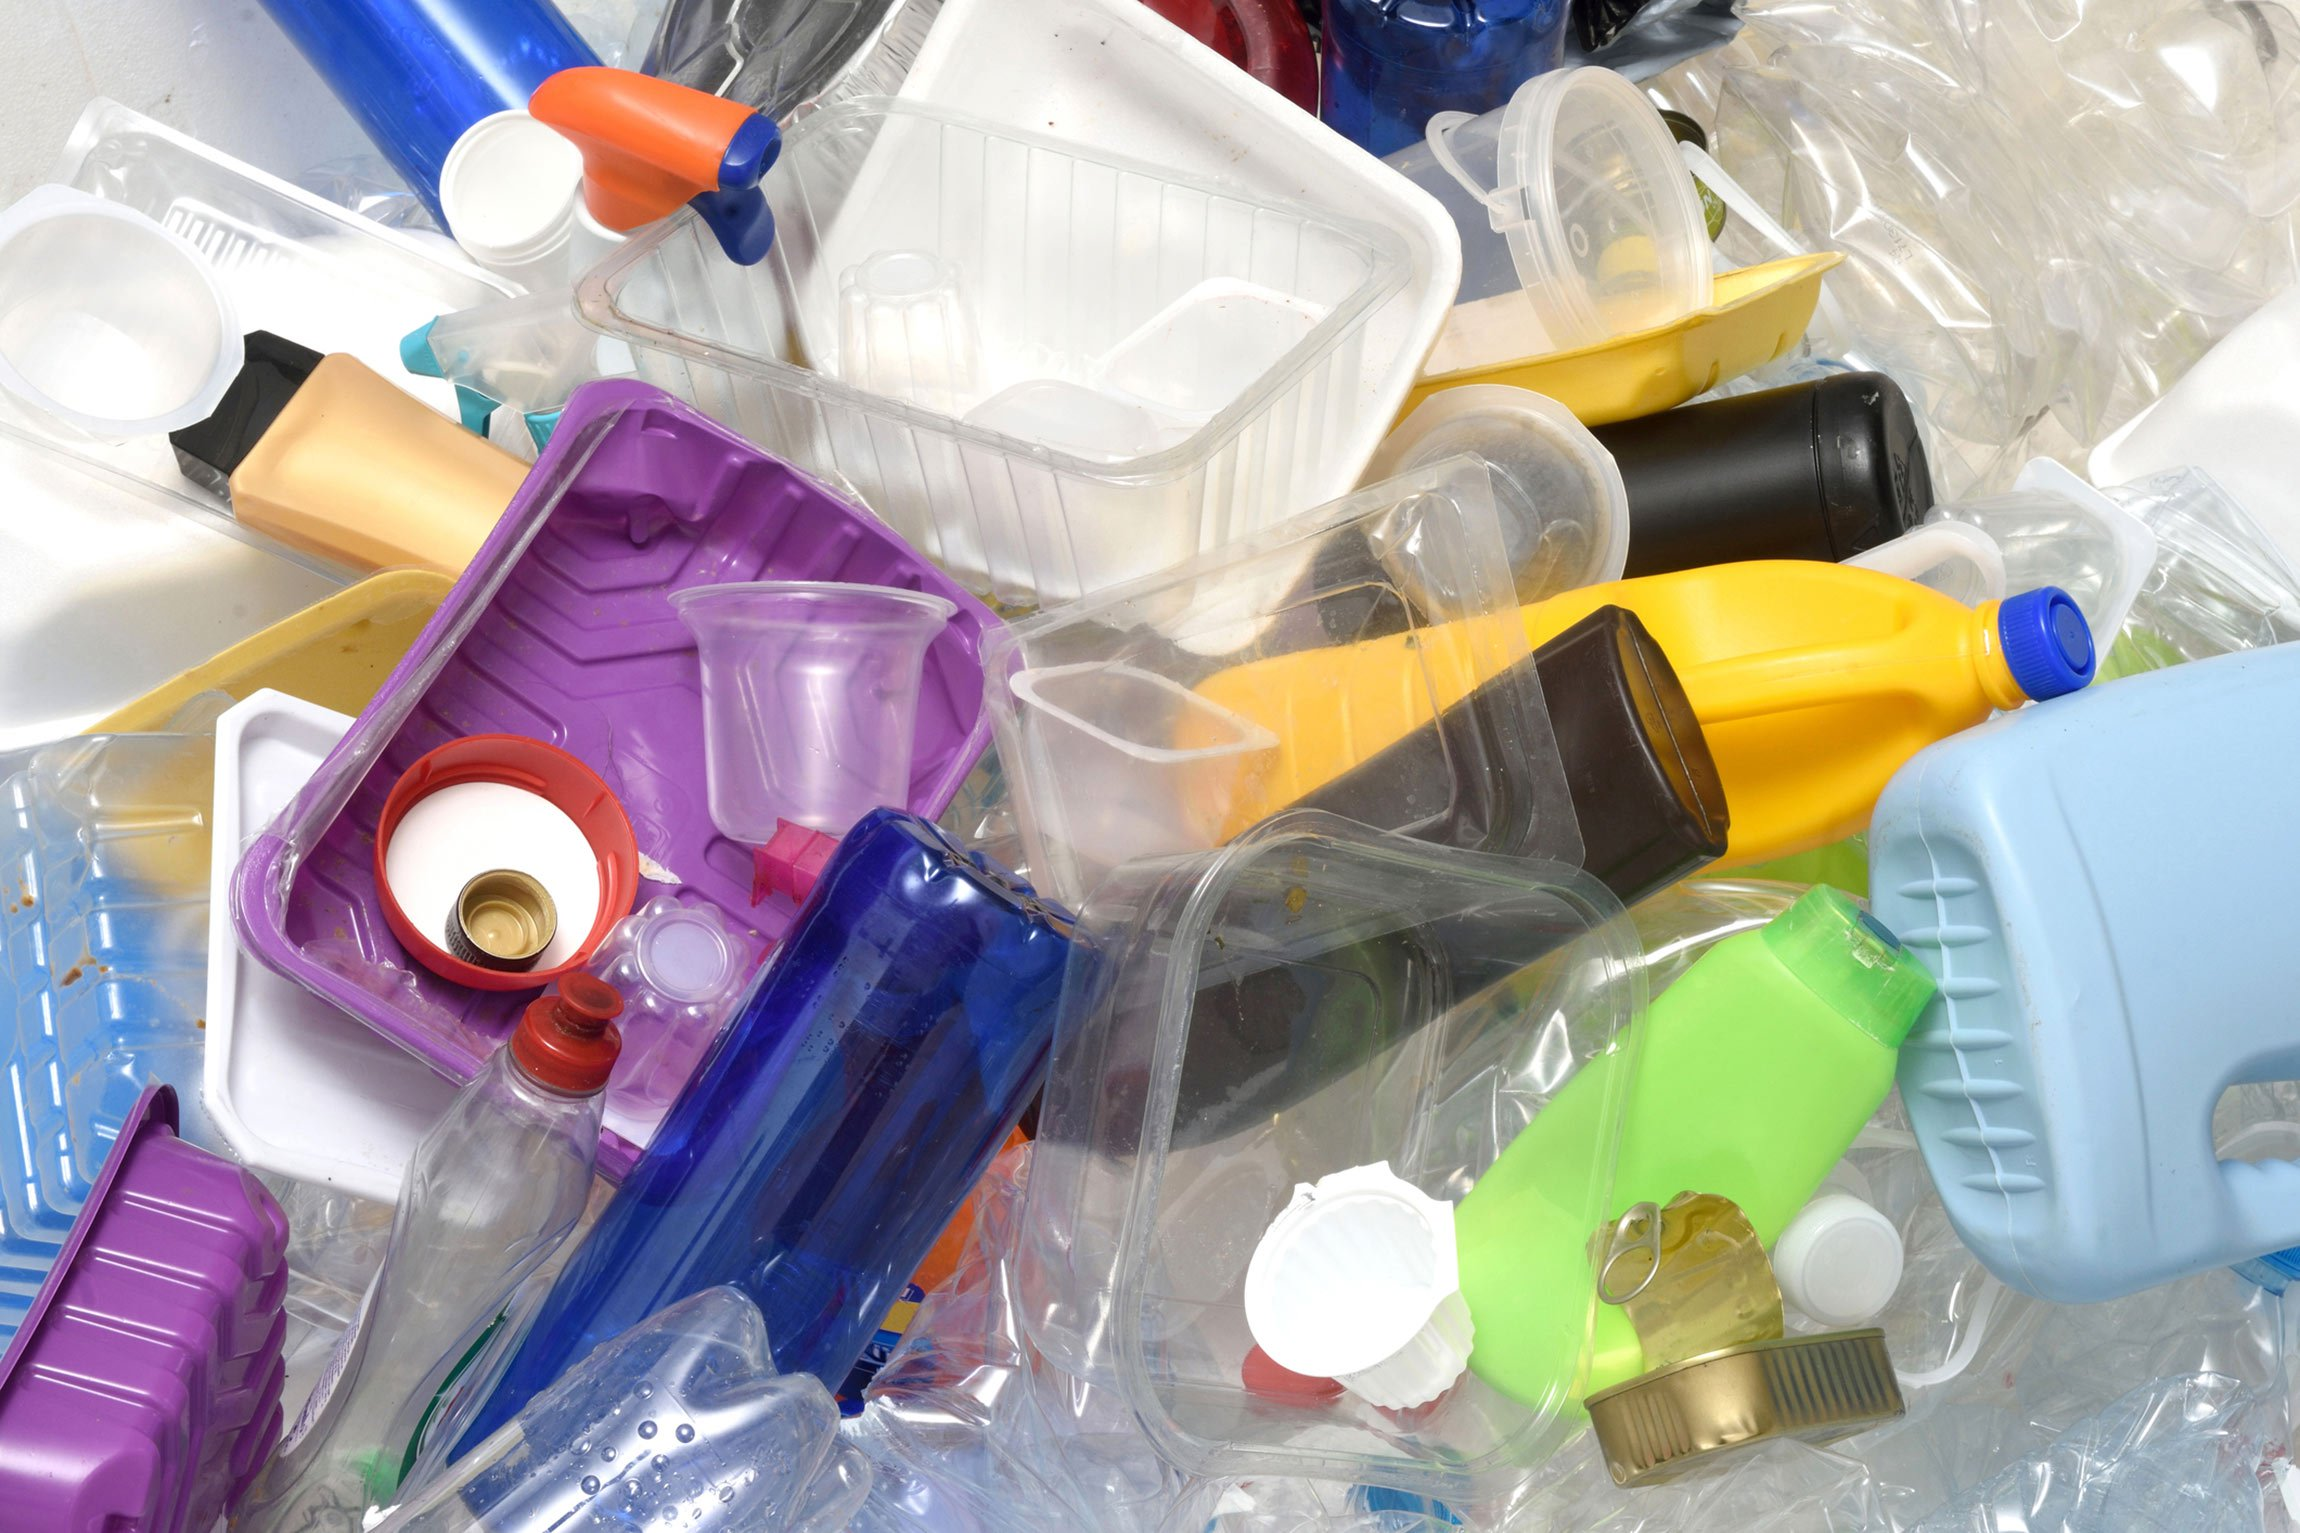 Single-Use Plastics: How You Can Help Solve the Plastic Problem